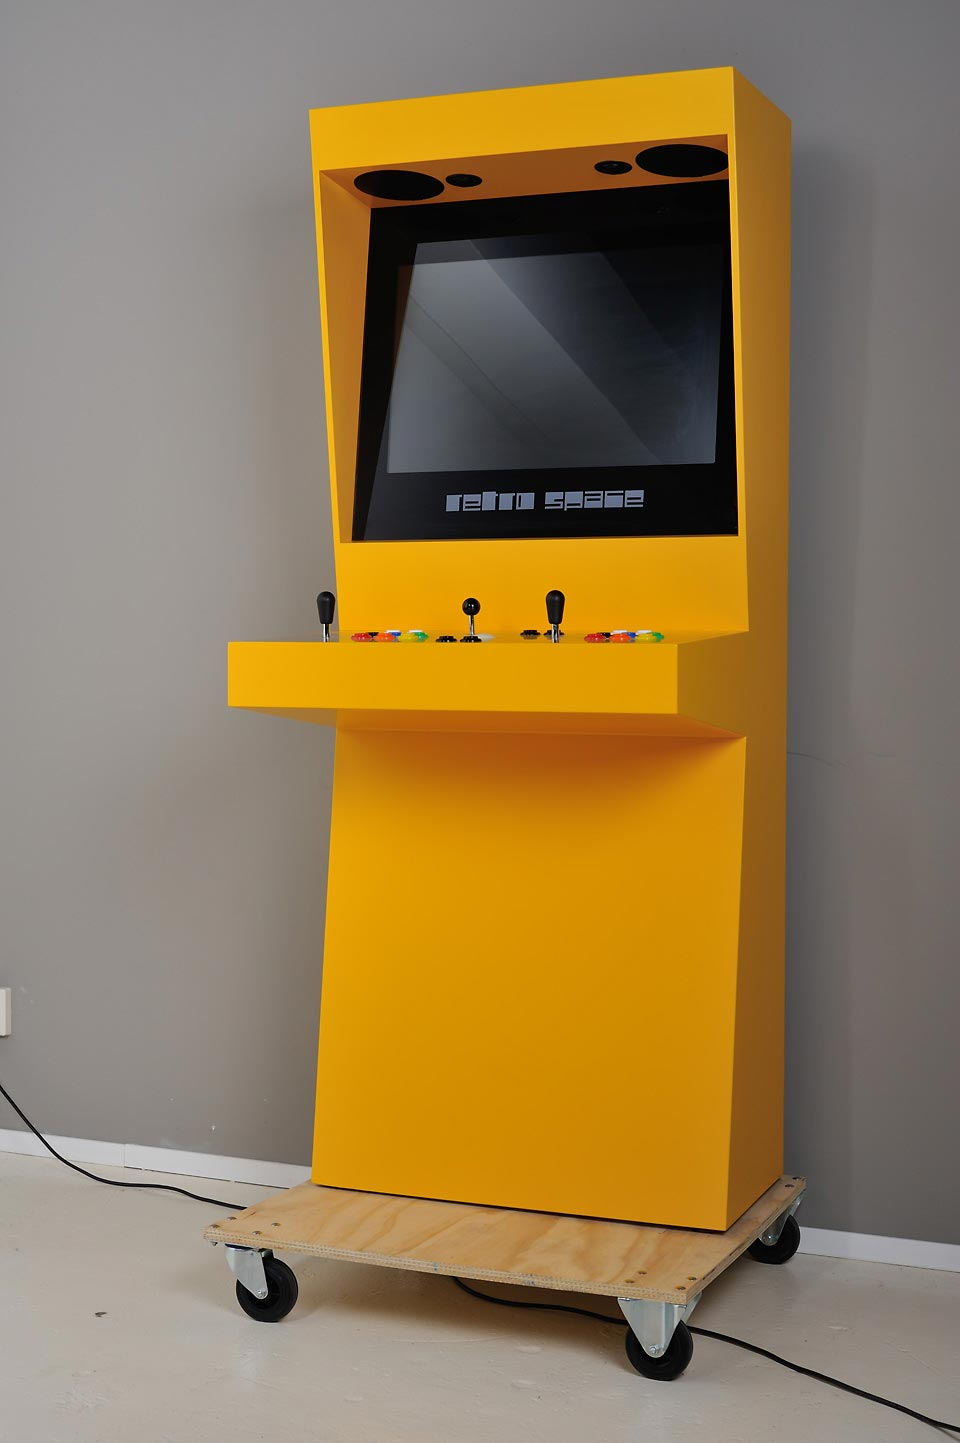 Retro Space full arcade cabinet yellow